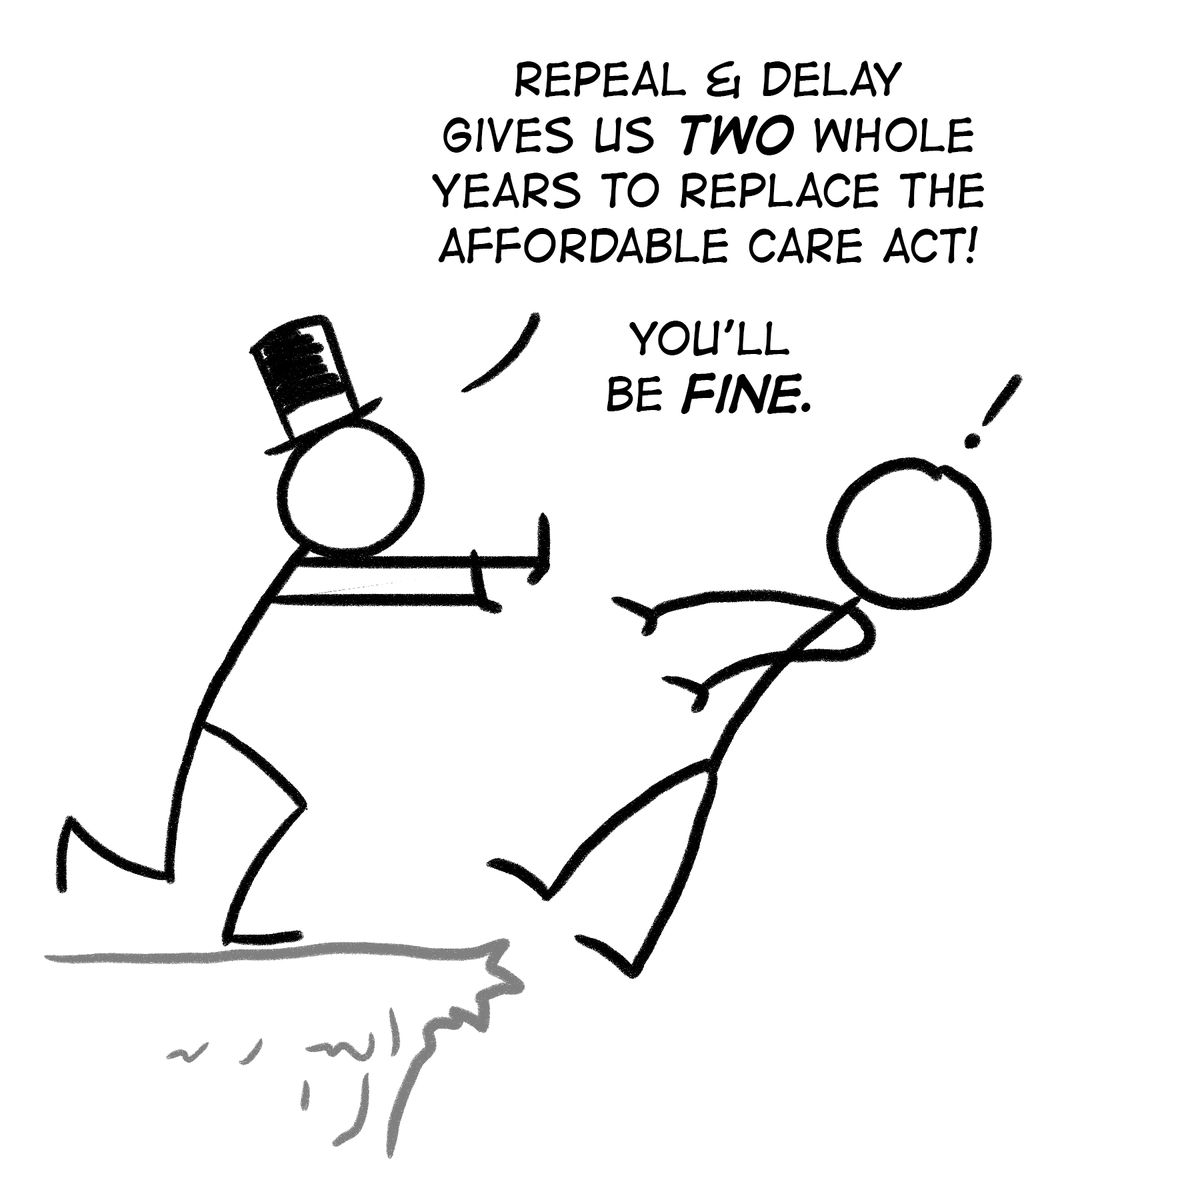 Repeal and delay gives us two whole years to replace the Affordable Care Act! You'll be fine.